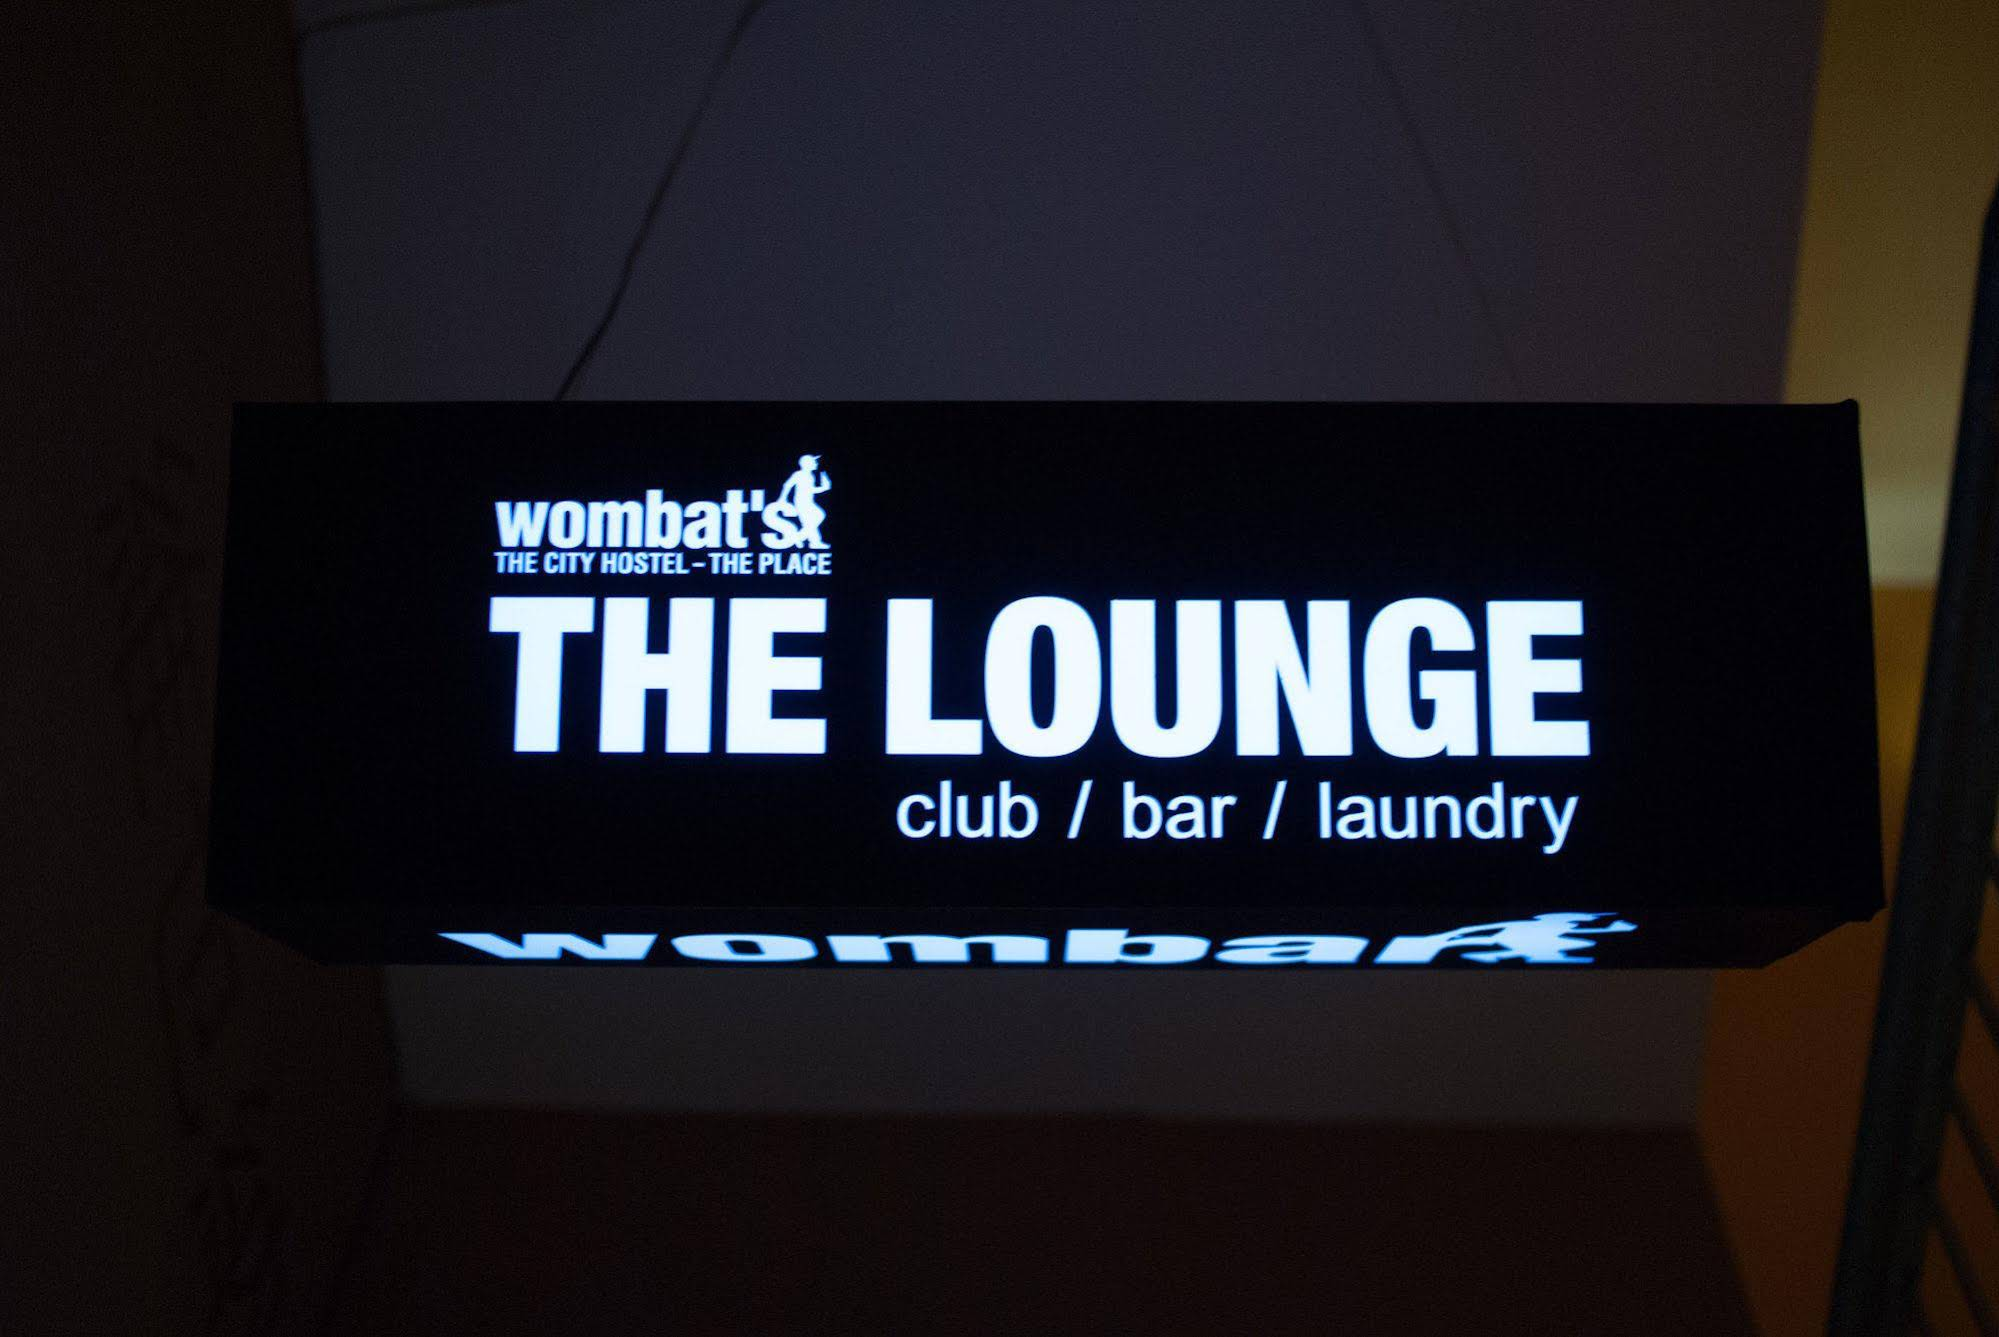 Wombat's City Hostel The Lounge